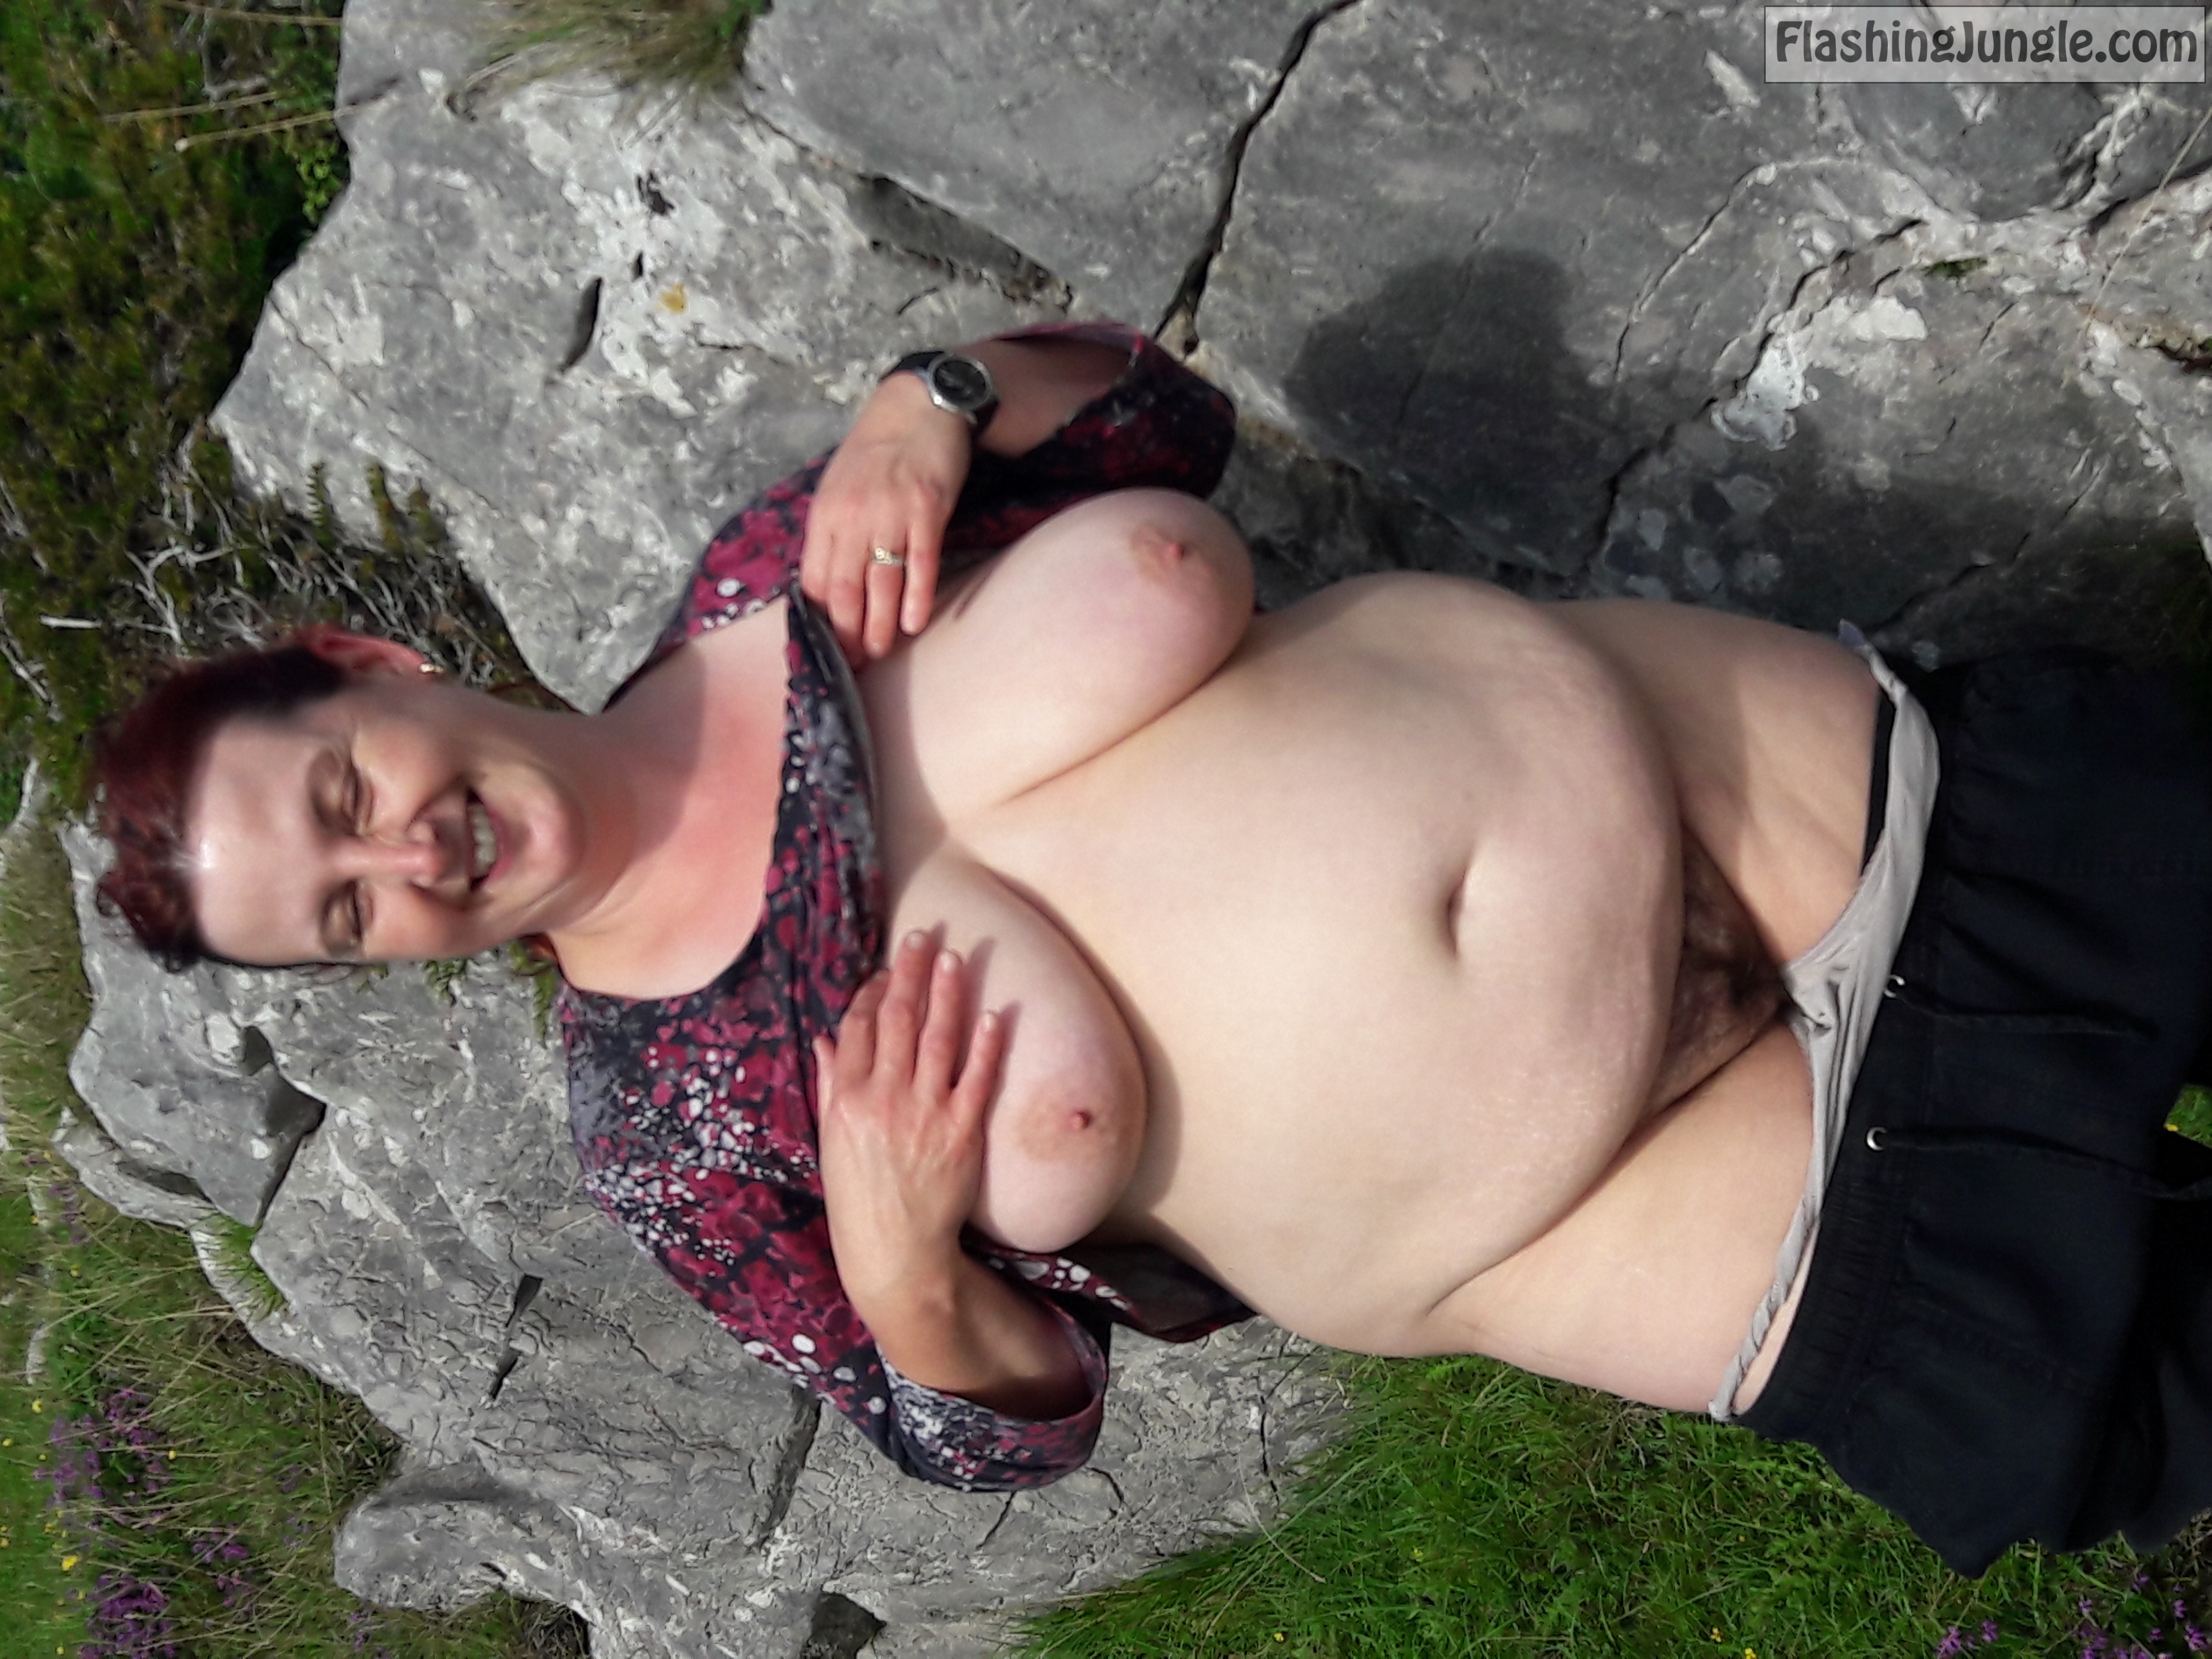 Chubby Boob Flash - Cock eager chubby woman flashing in nature Boobs Flash Pics, Mature Flashing  Pics, MILF Flashing Pics, Public Flashing Pics, Real Amateurs from Google,  Tumblr, Pinterest, Facebook, Twitter, Instagram and Snapchat.